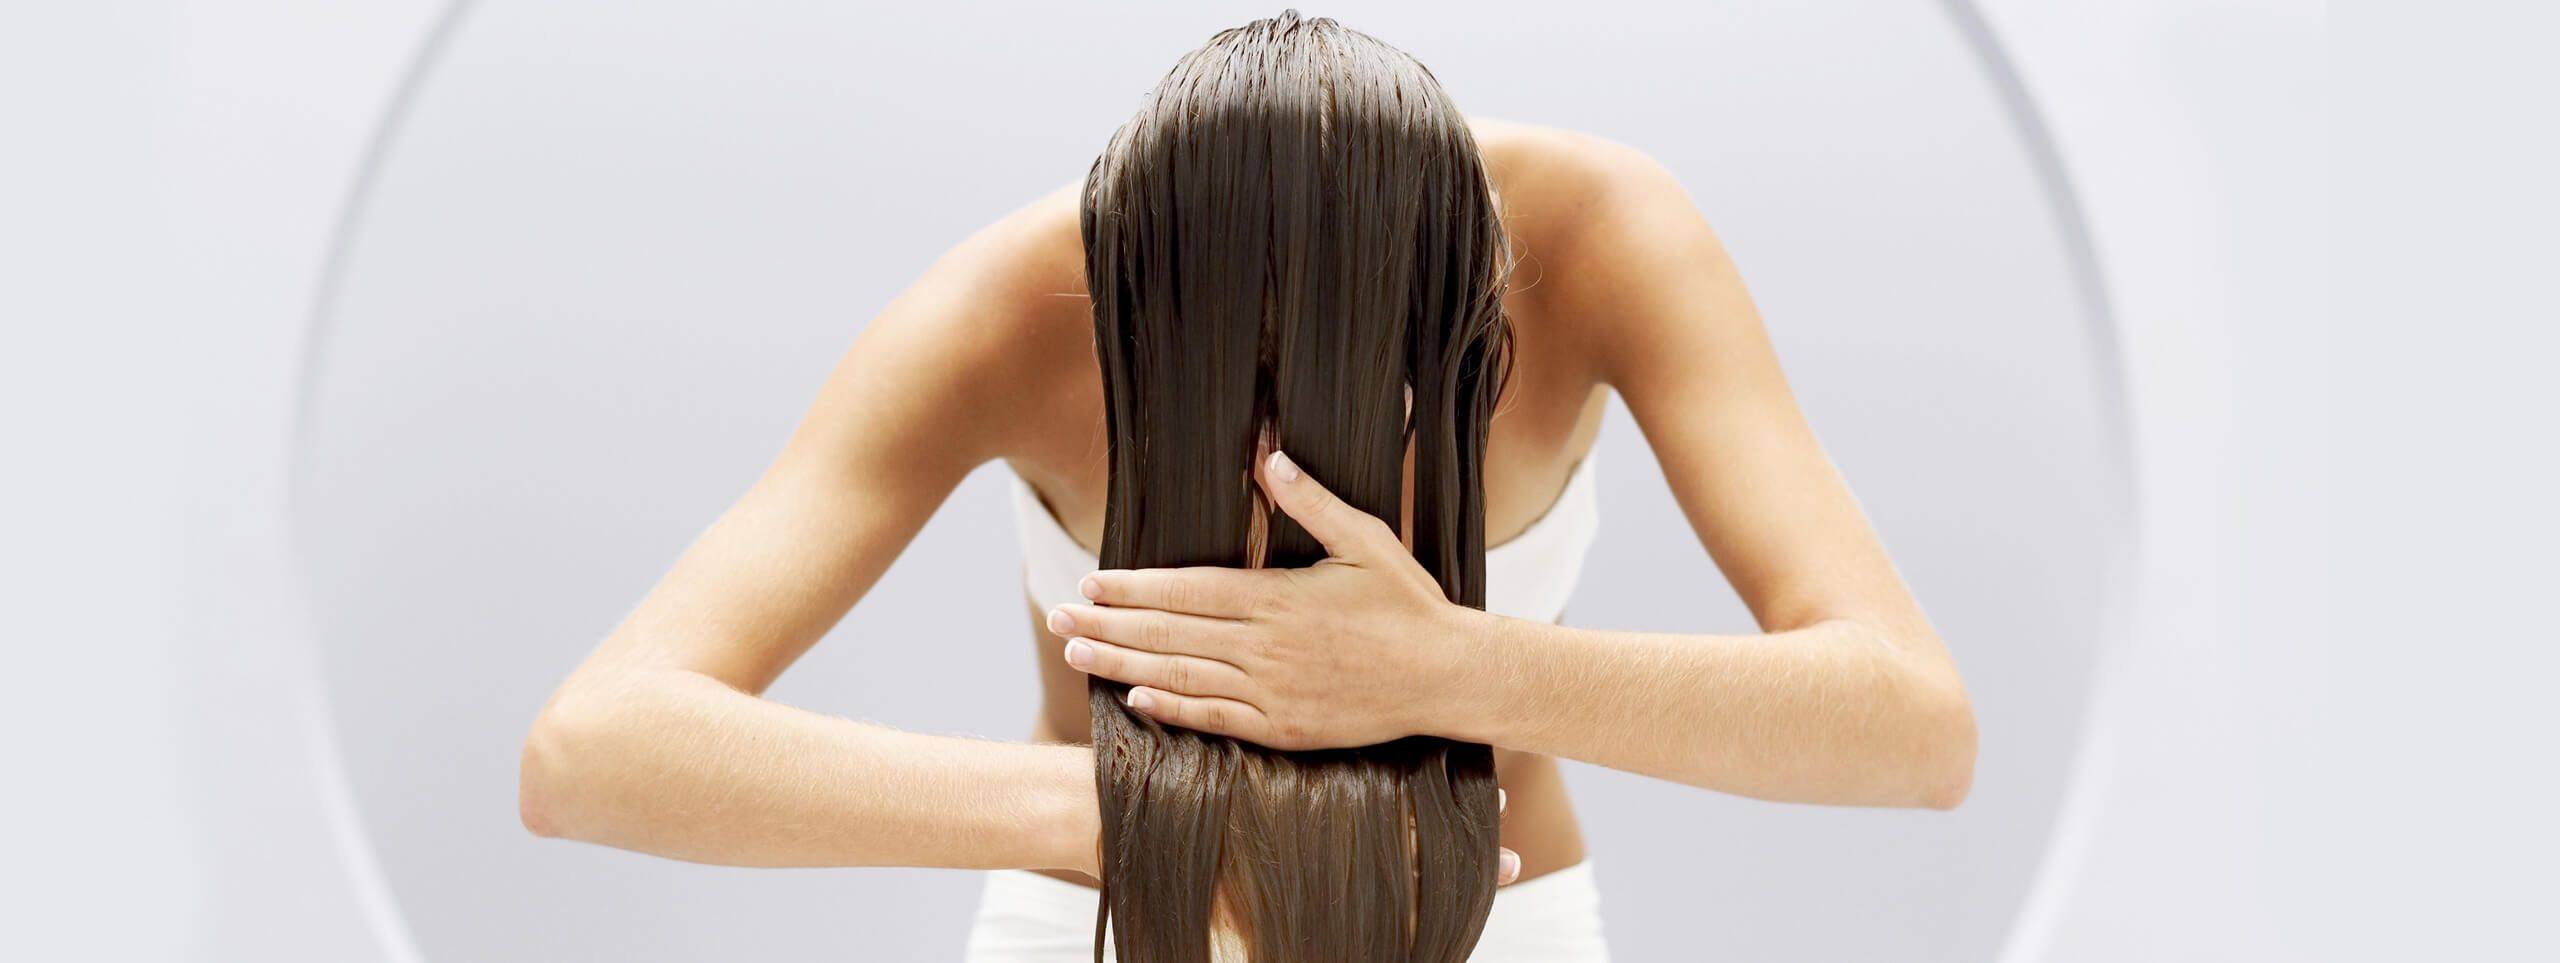 Woman applies hair treatment to long hair